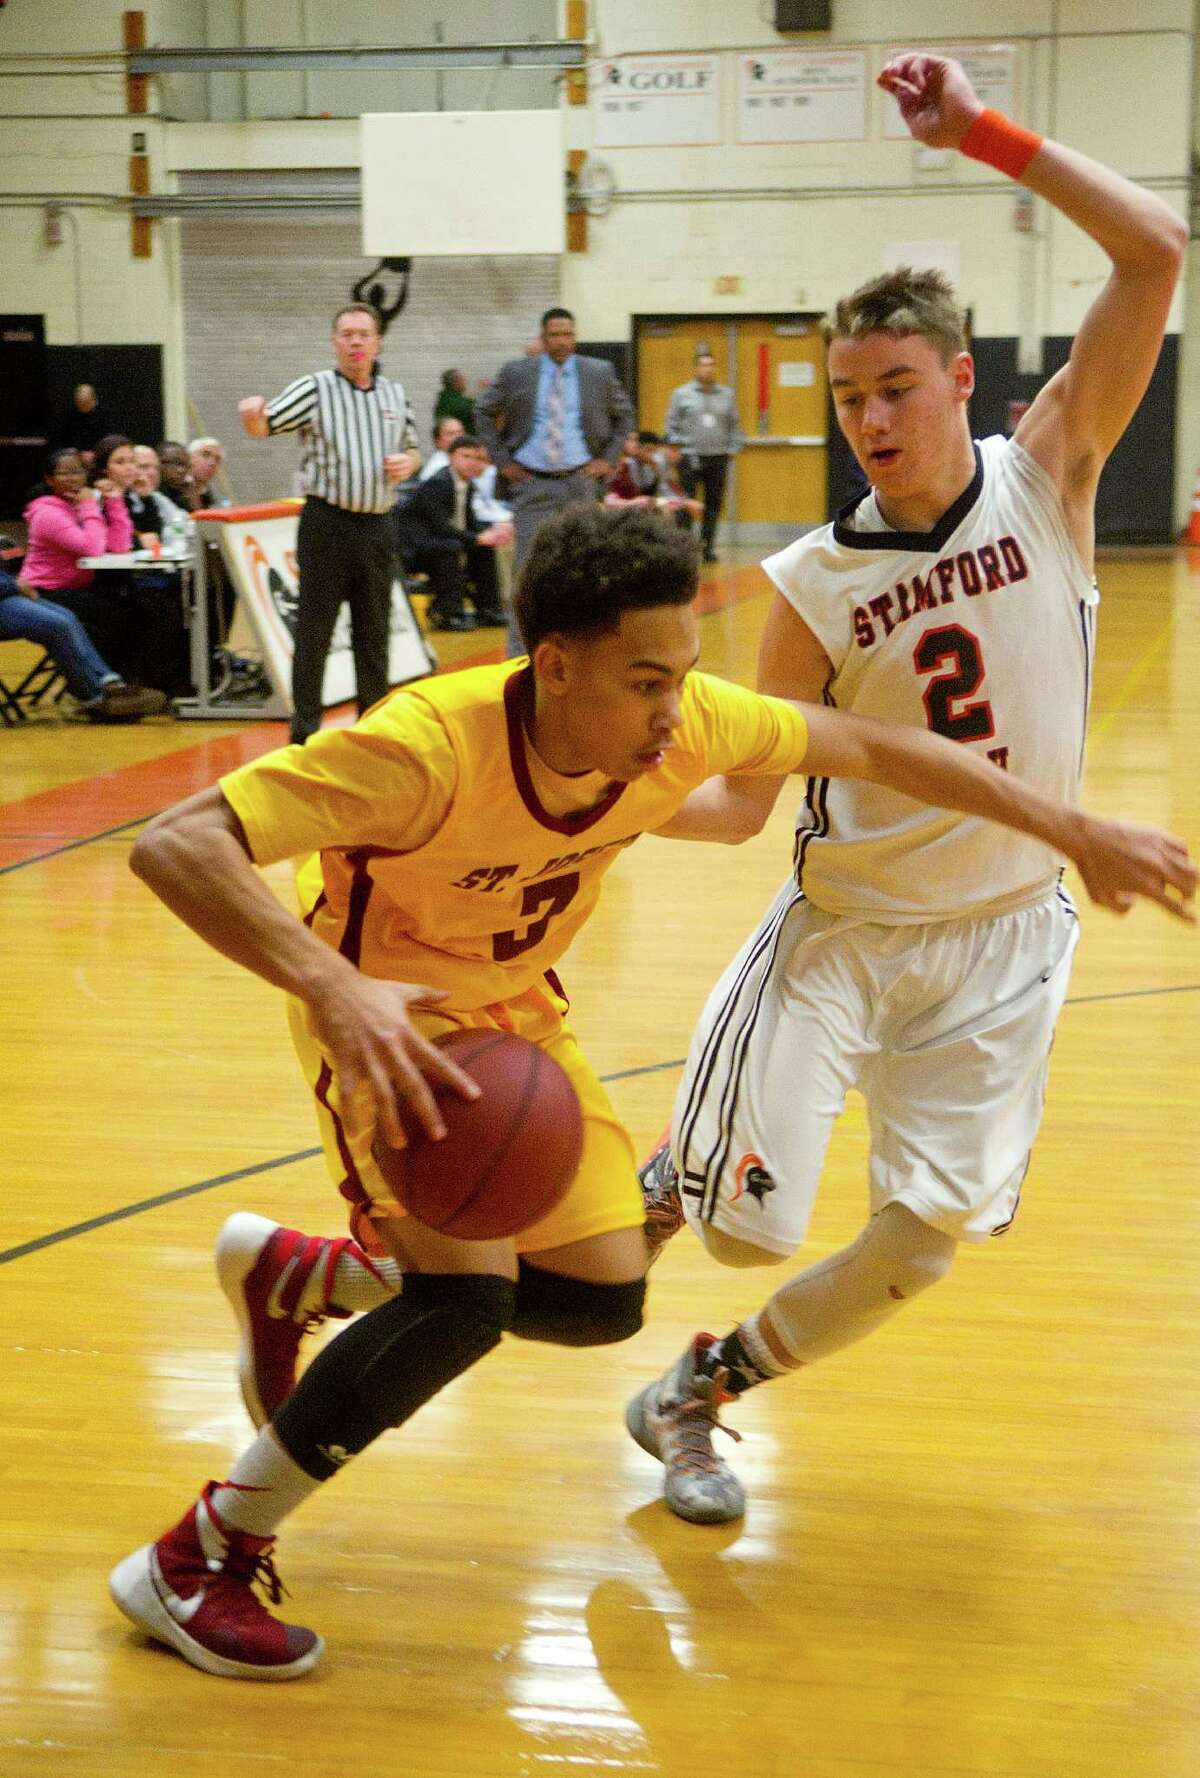 St. Joseph's Camren Menefee controls the ball during Friday's boys basketball game at Stamford High School.